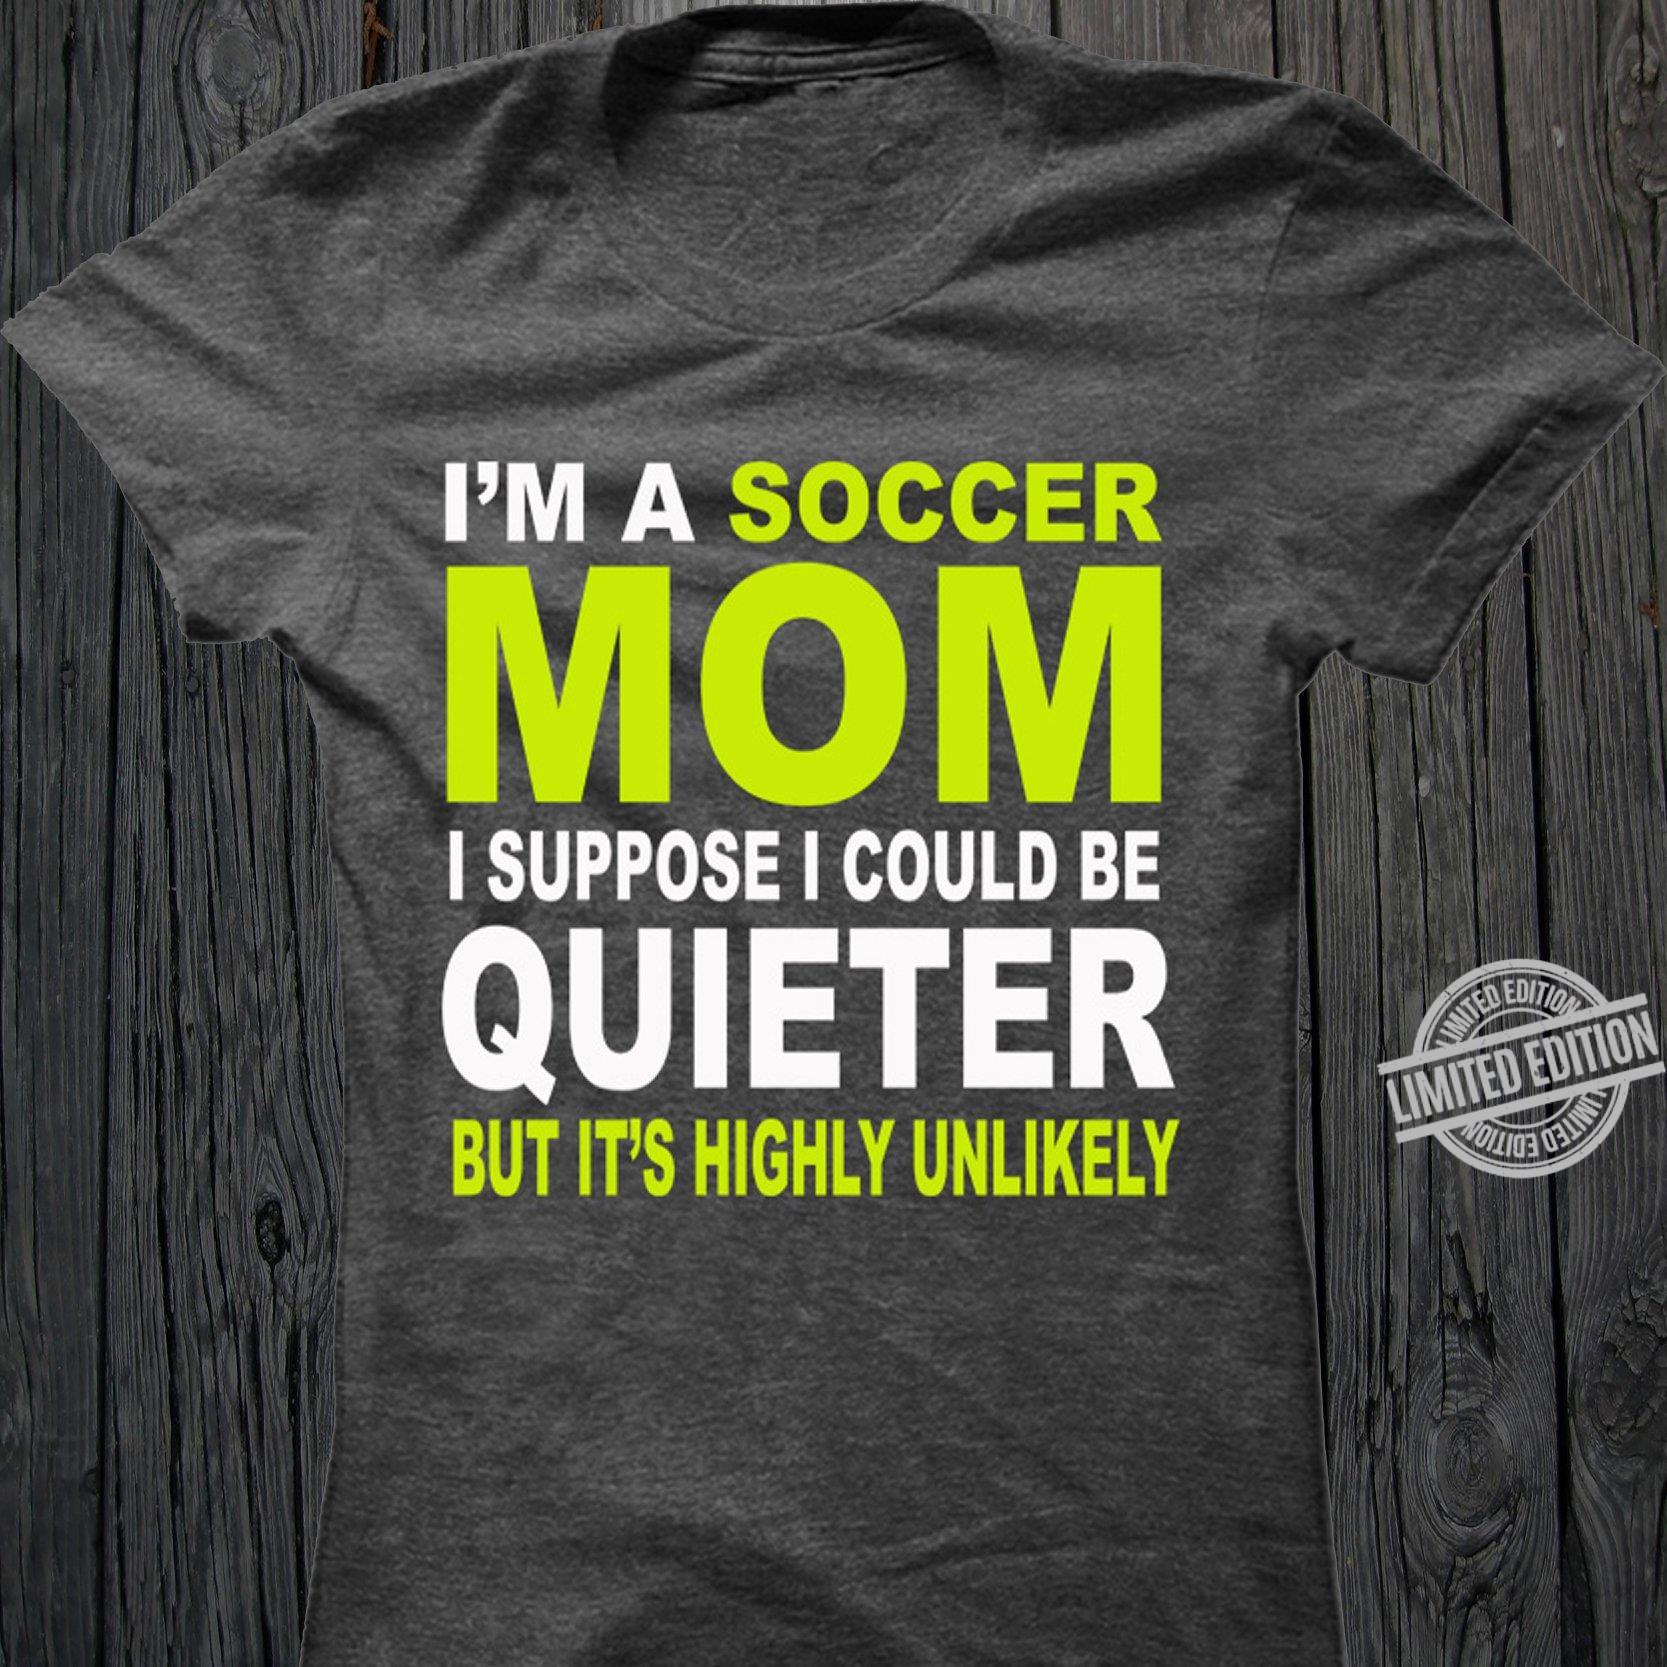 I'm A Soccer Mom I Suppose I Could Be Quieter But It's Highly Unlikely Shirt